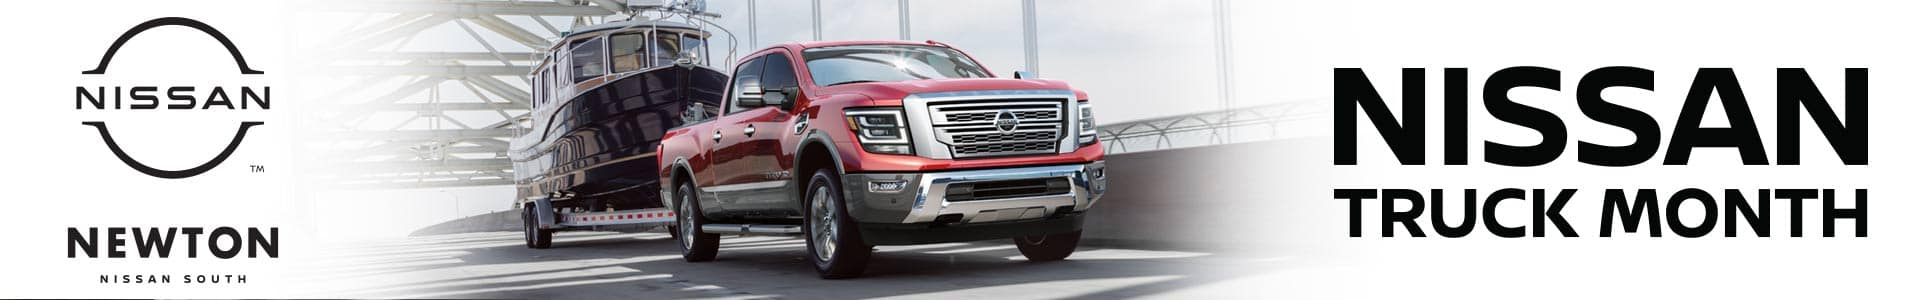 Newton Nissan South Truck Month - Save Big on the Nissan Titan and Frontier